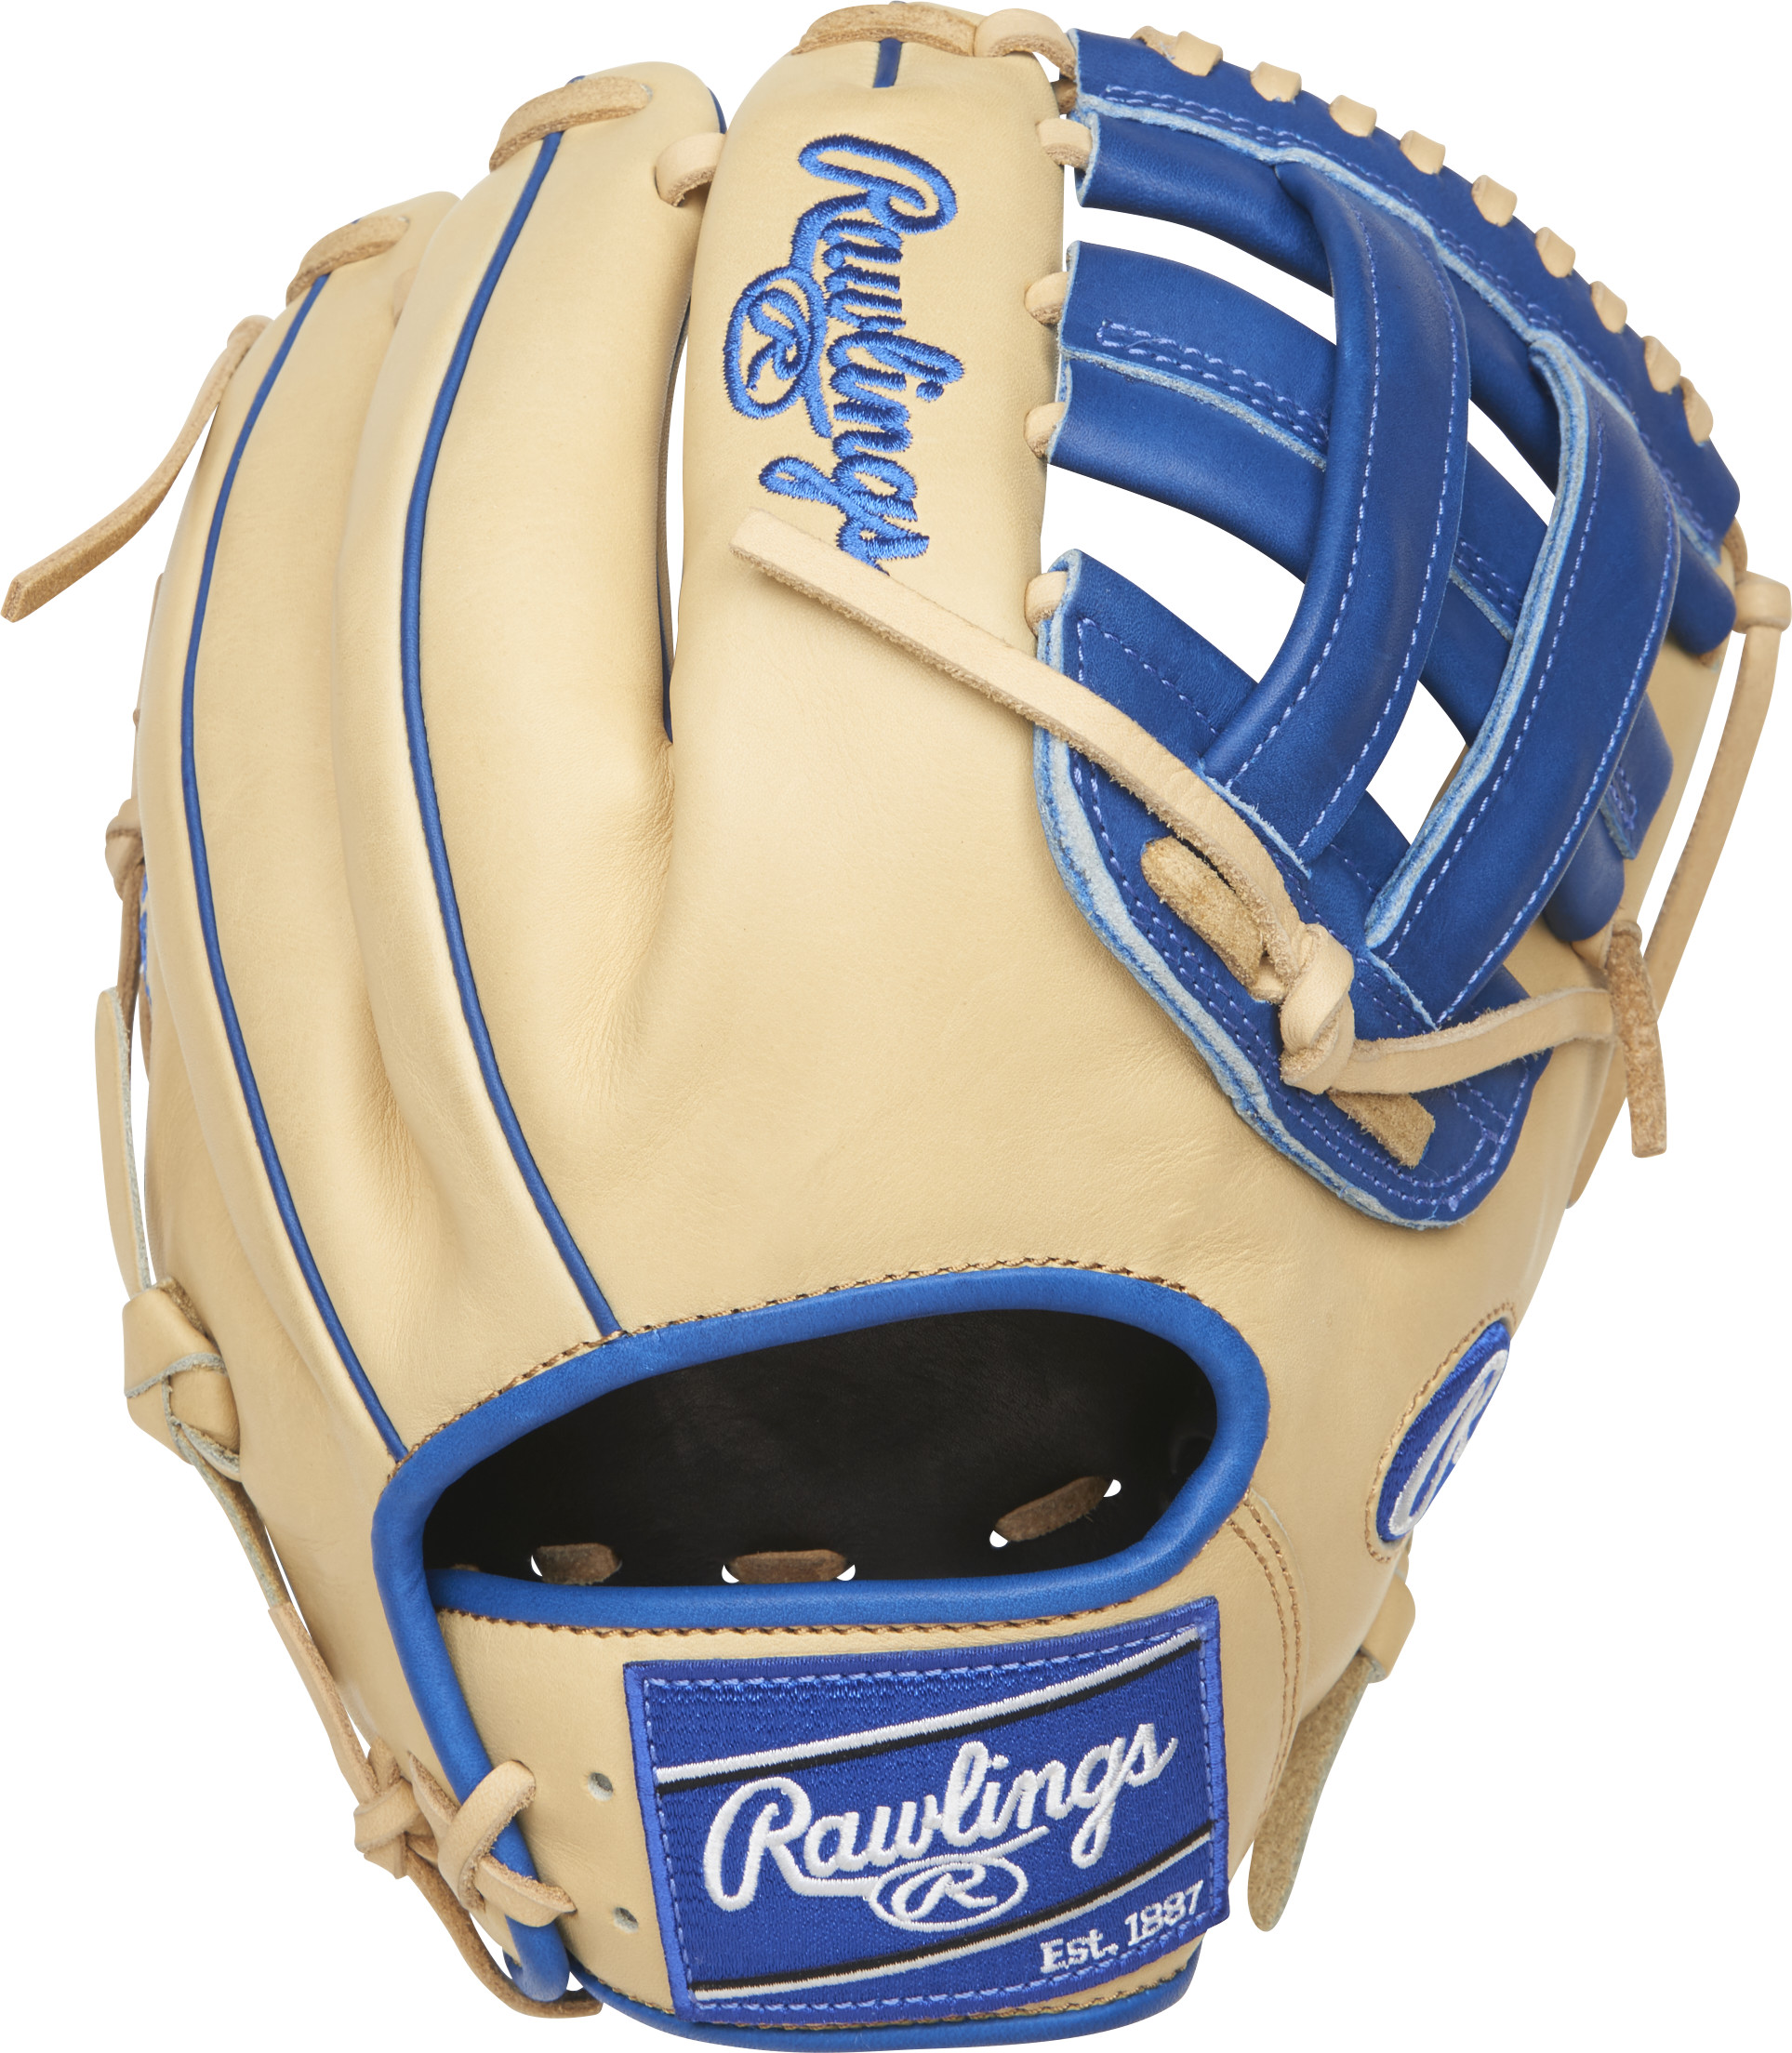 http://www.bestbatdeals.com/images/gloves/rawlings/PRO205-6CCR-2.jpg